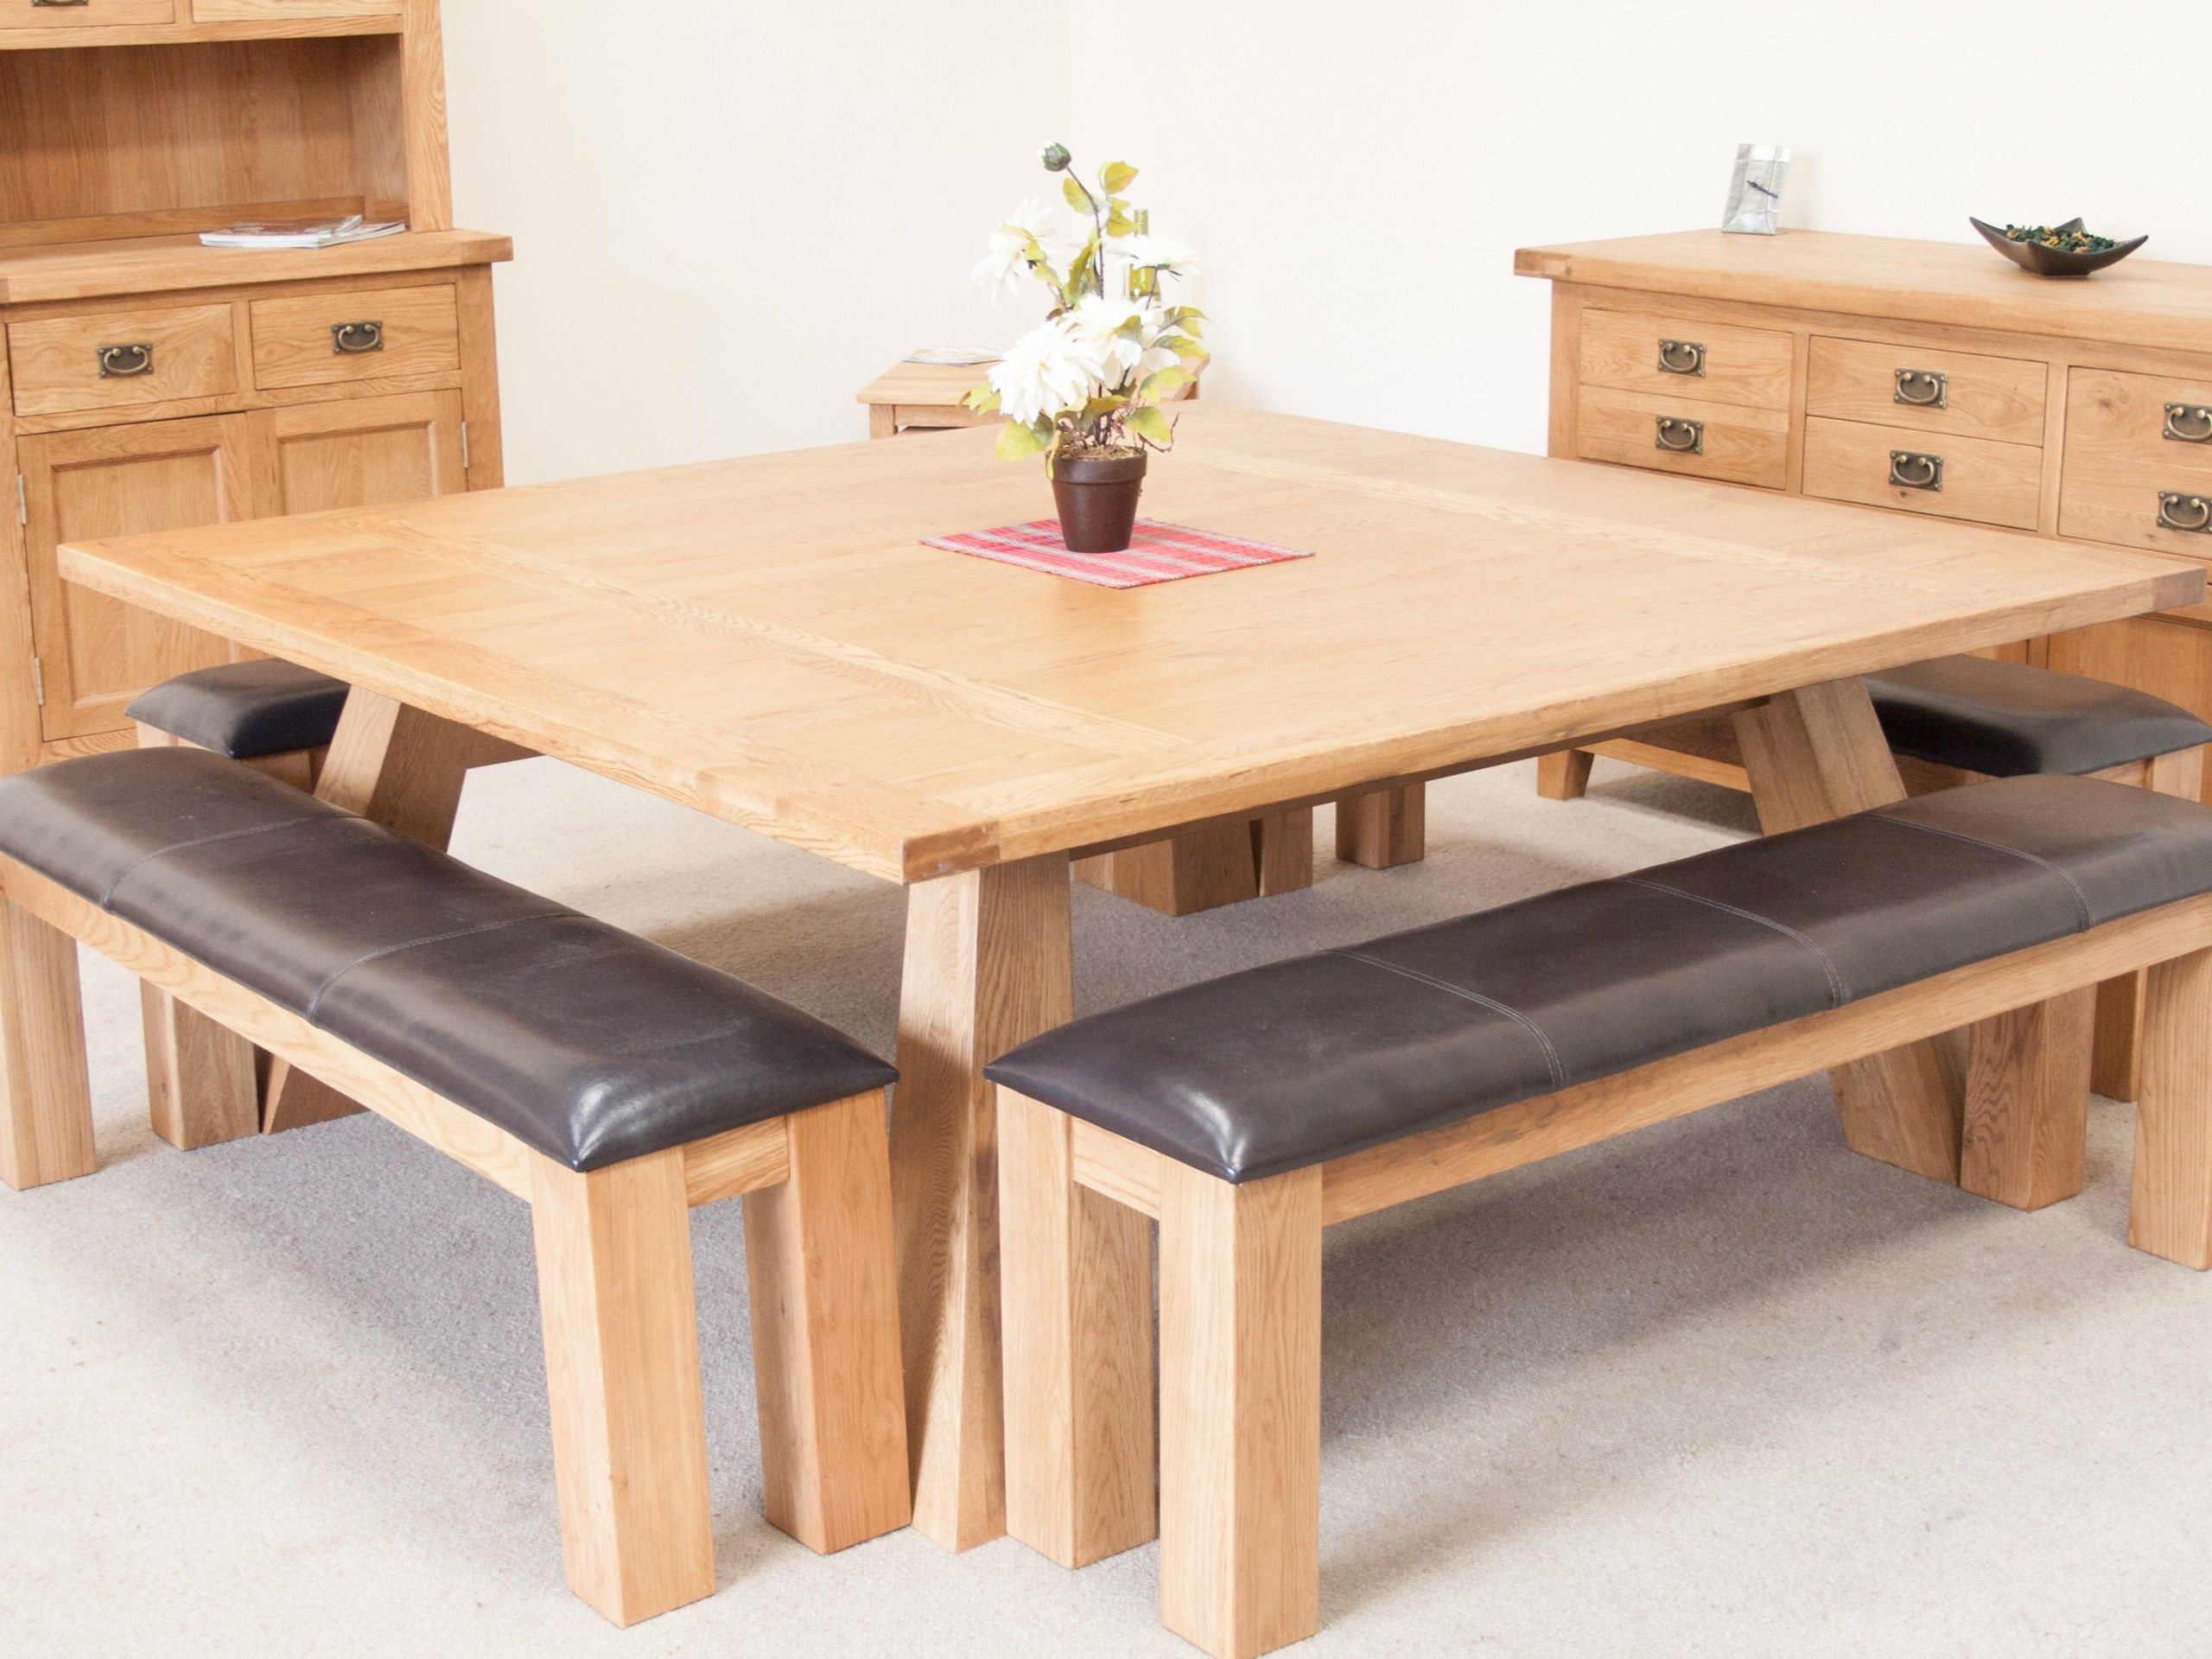 Country Oak 1.8m Large Square Oak Dining Room Table Oak